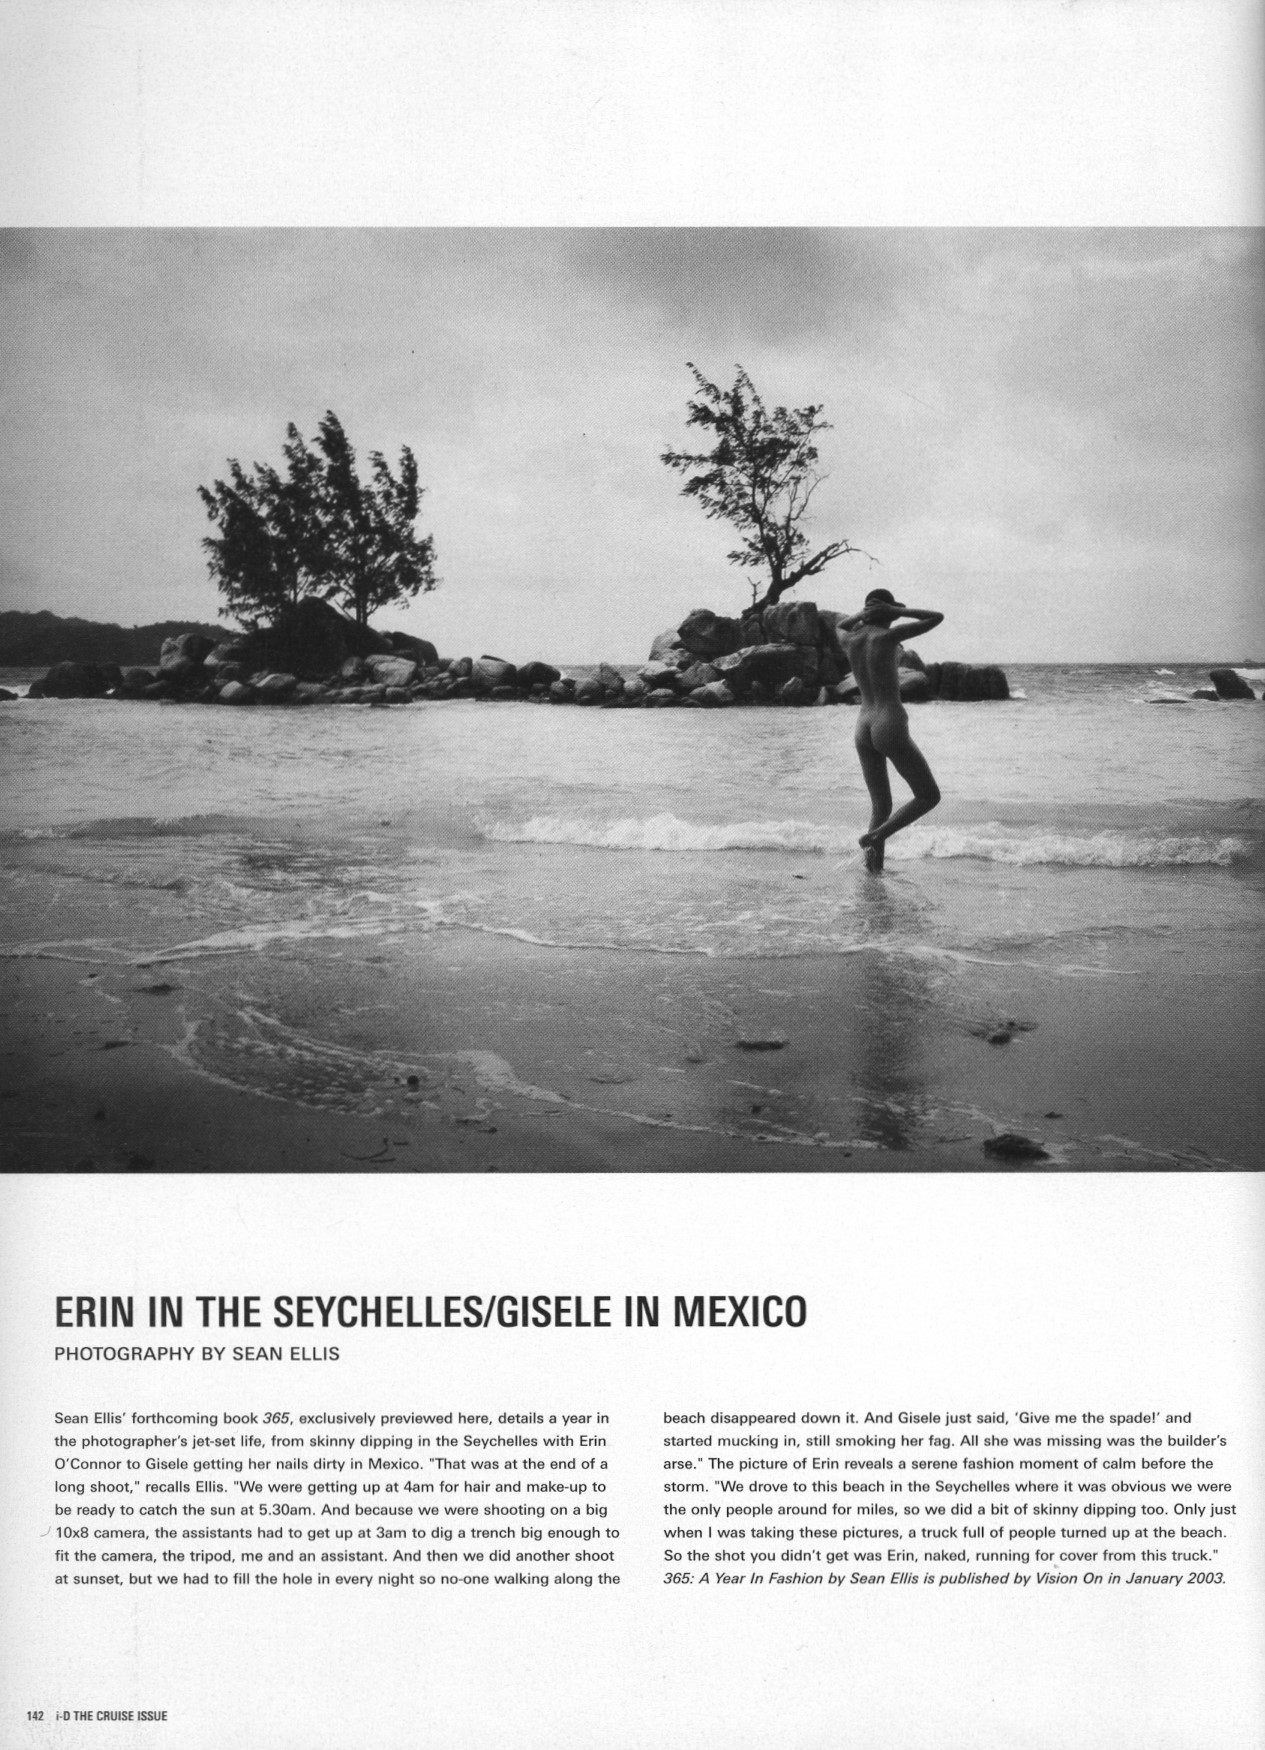 erin in the seychelles gisele in mexico photography sean ellis id magazine n.226 december 2002